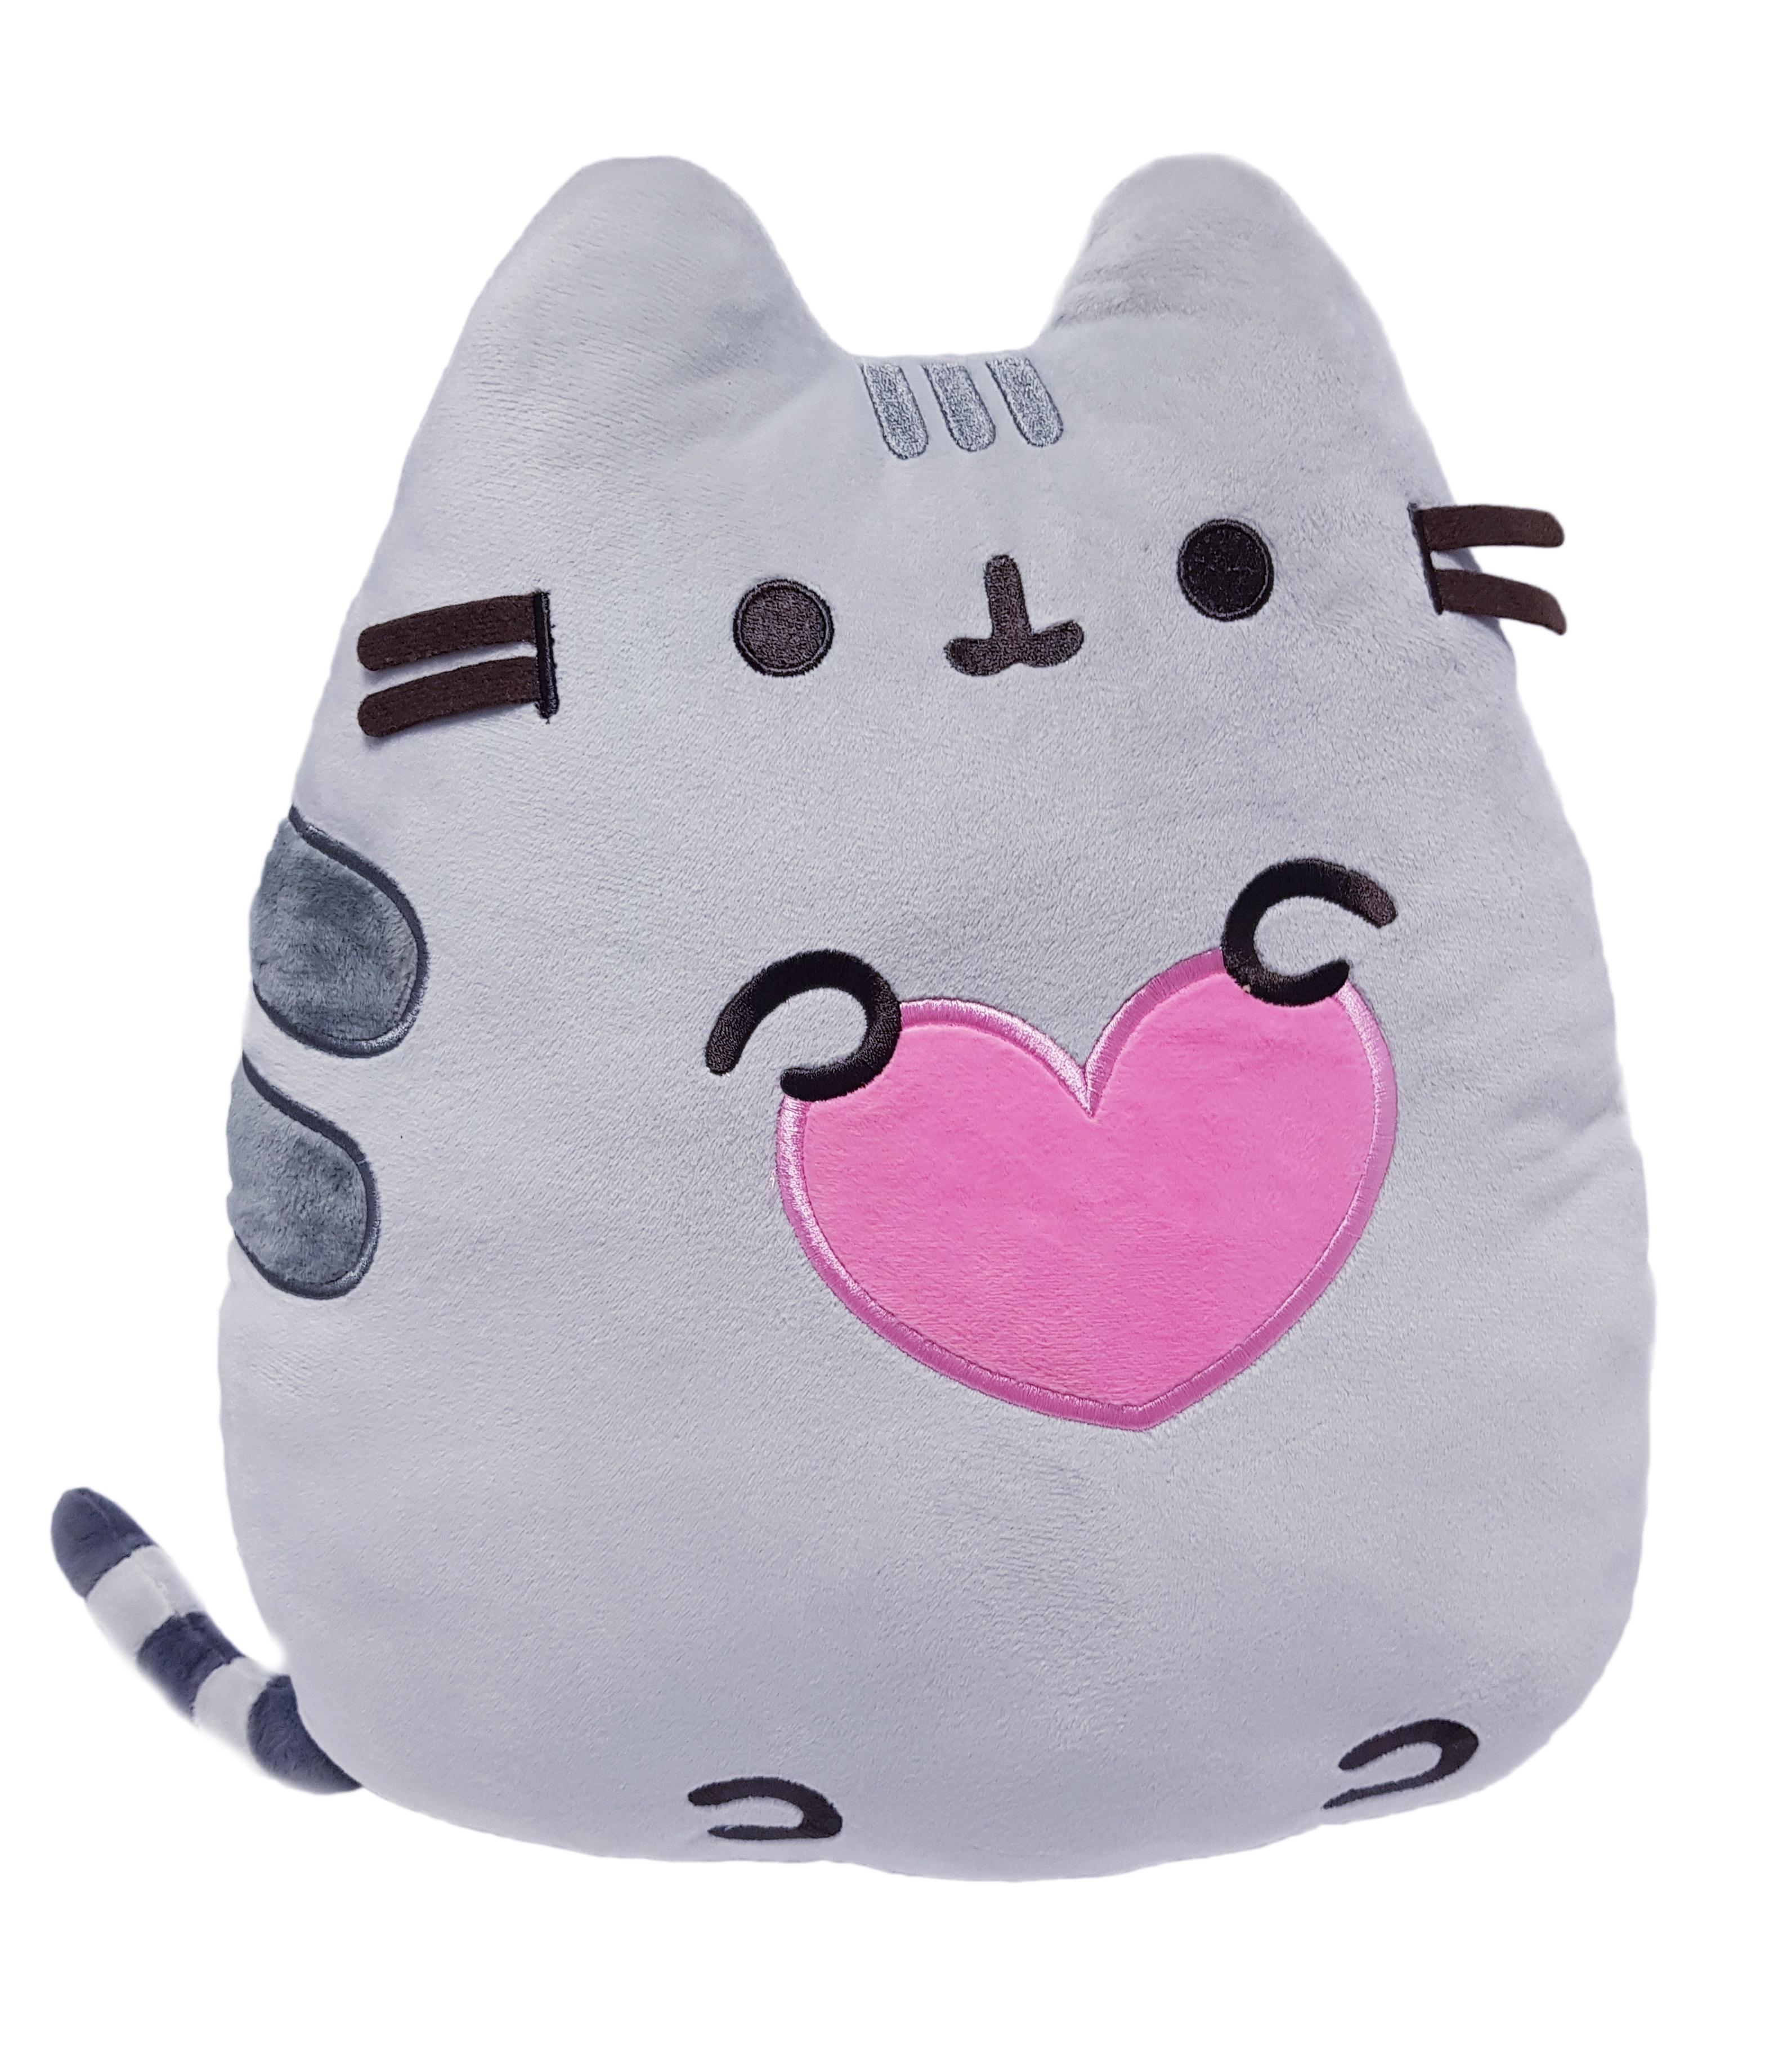 5557c4b7c Buy Pusheen Plush Cats | Stuffed Toys | Lazada.sg